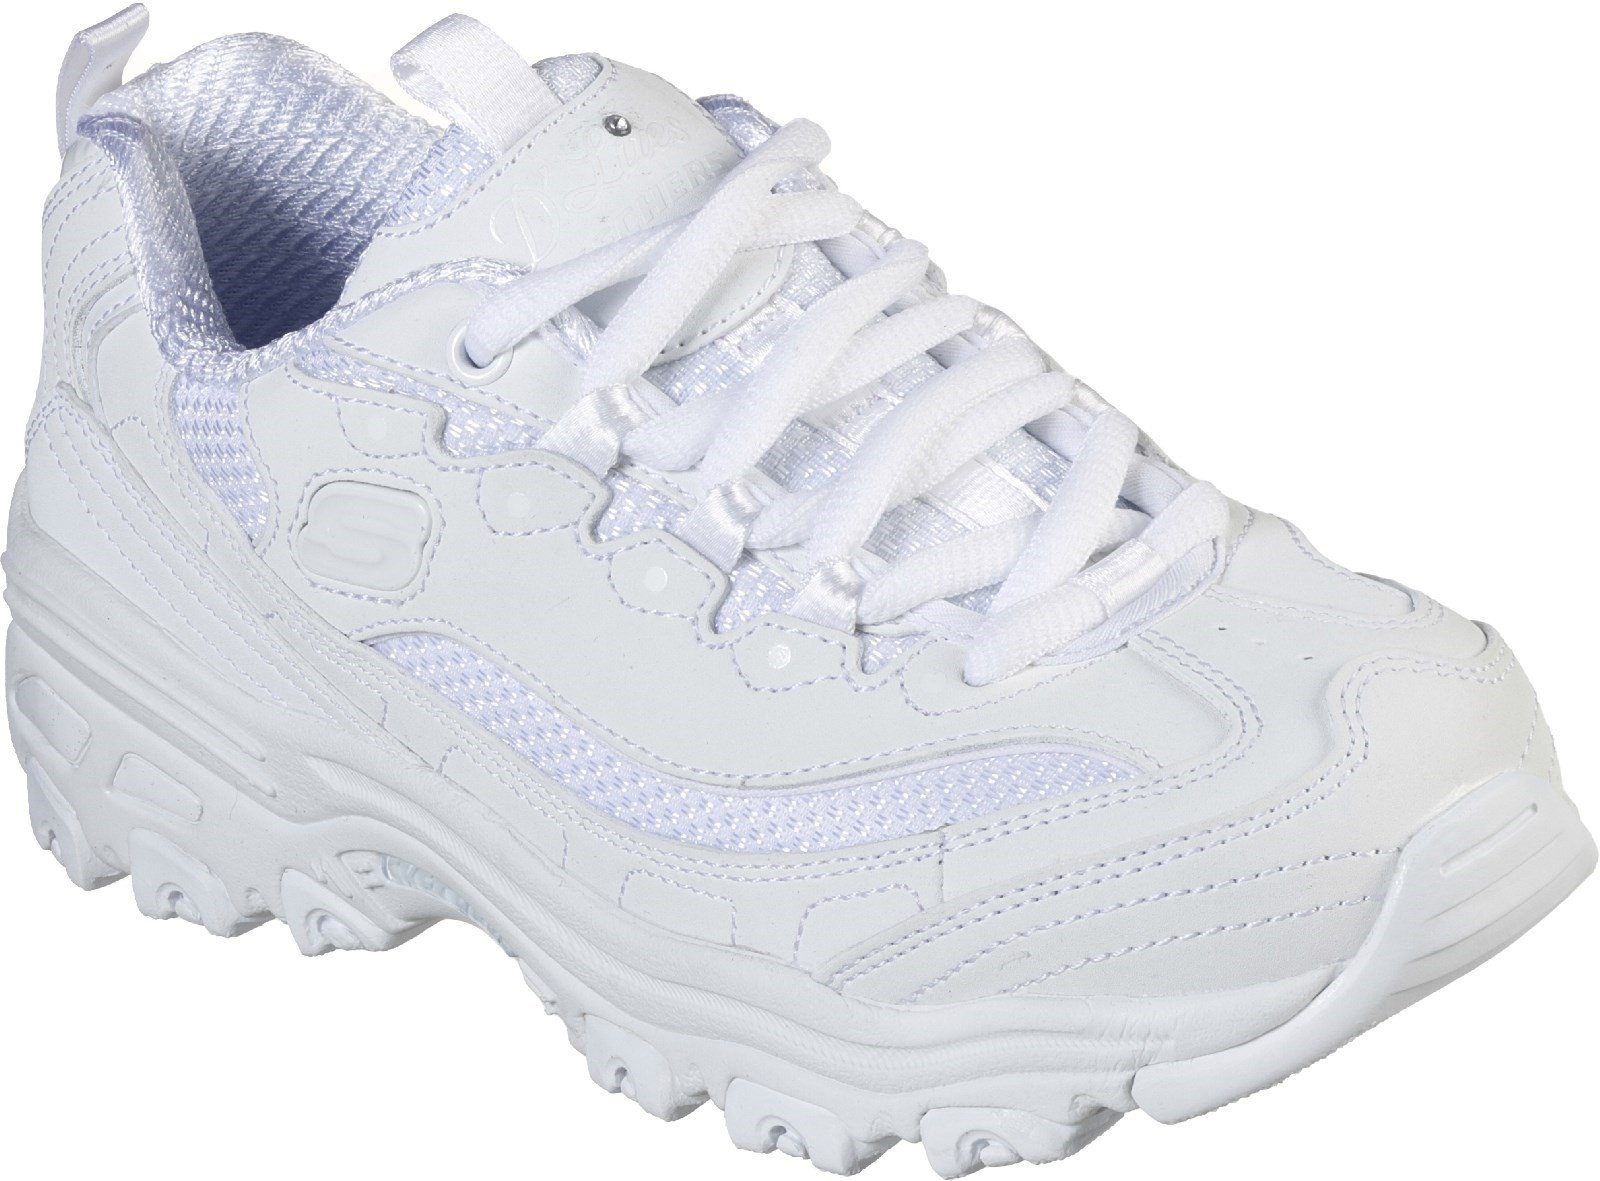 Skechers Unisex Lace Up D'Lites Trainers White 30547 - White 9.5 UK